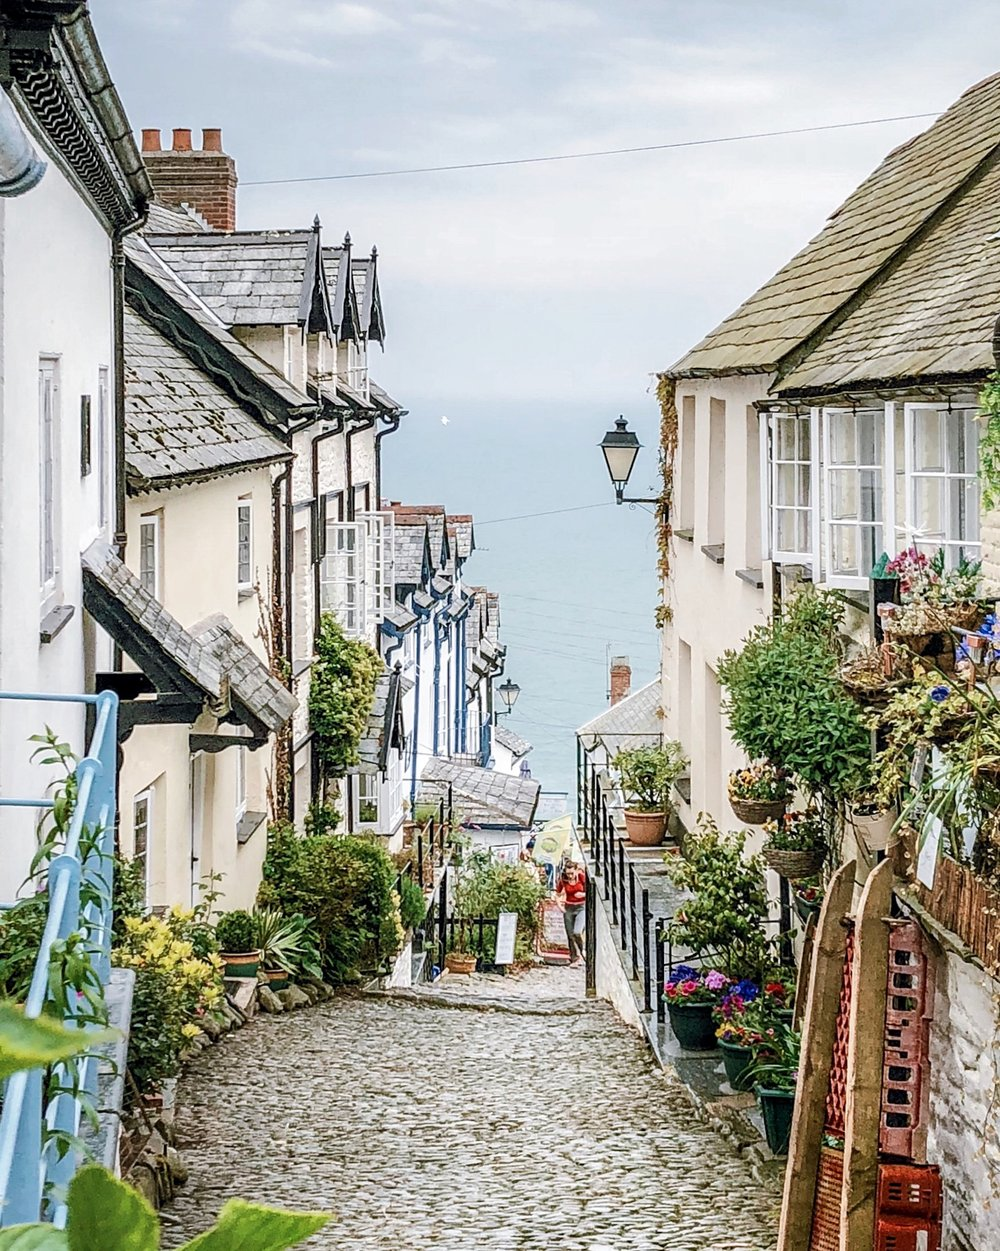 Ellie Dyduch - Clovelly, Devon, UK